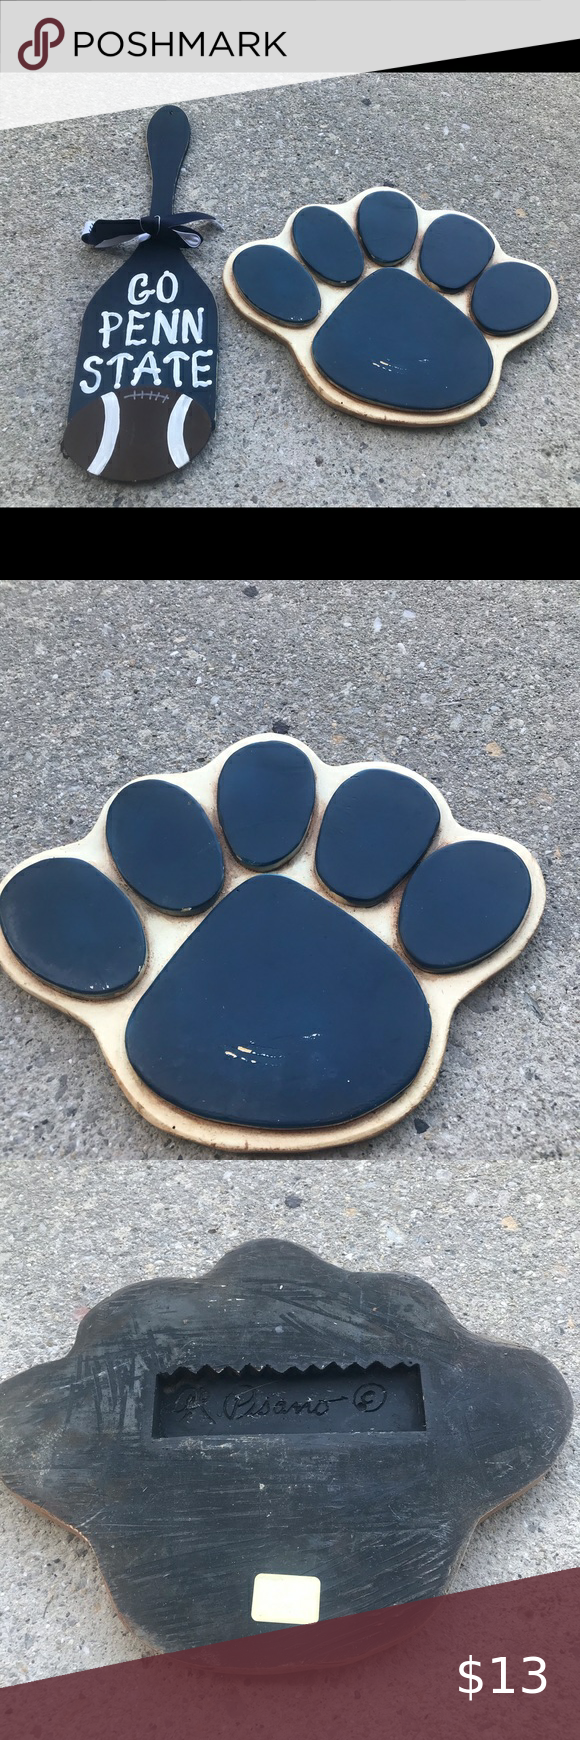 Penn State Decor In 2020 Paw Print Decorations State Decor Decor 38kb, penn state paw print clip art picture with tags: pinterest